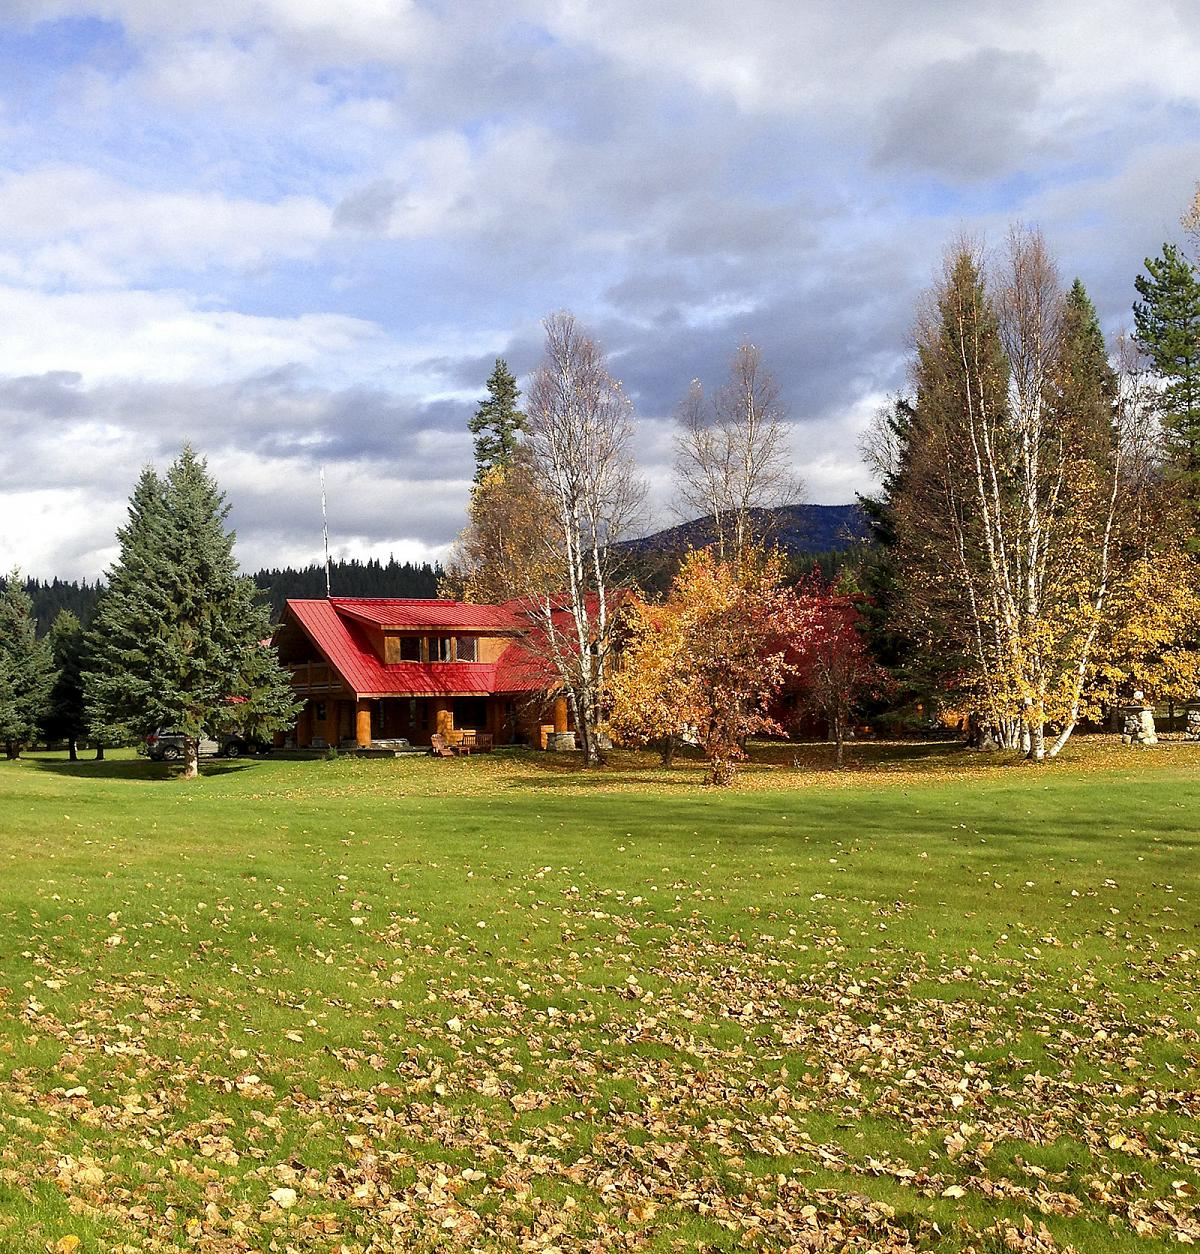 The lodge is pretty decent—even in the absence of snow.